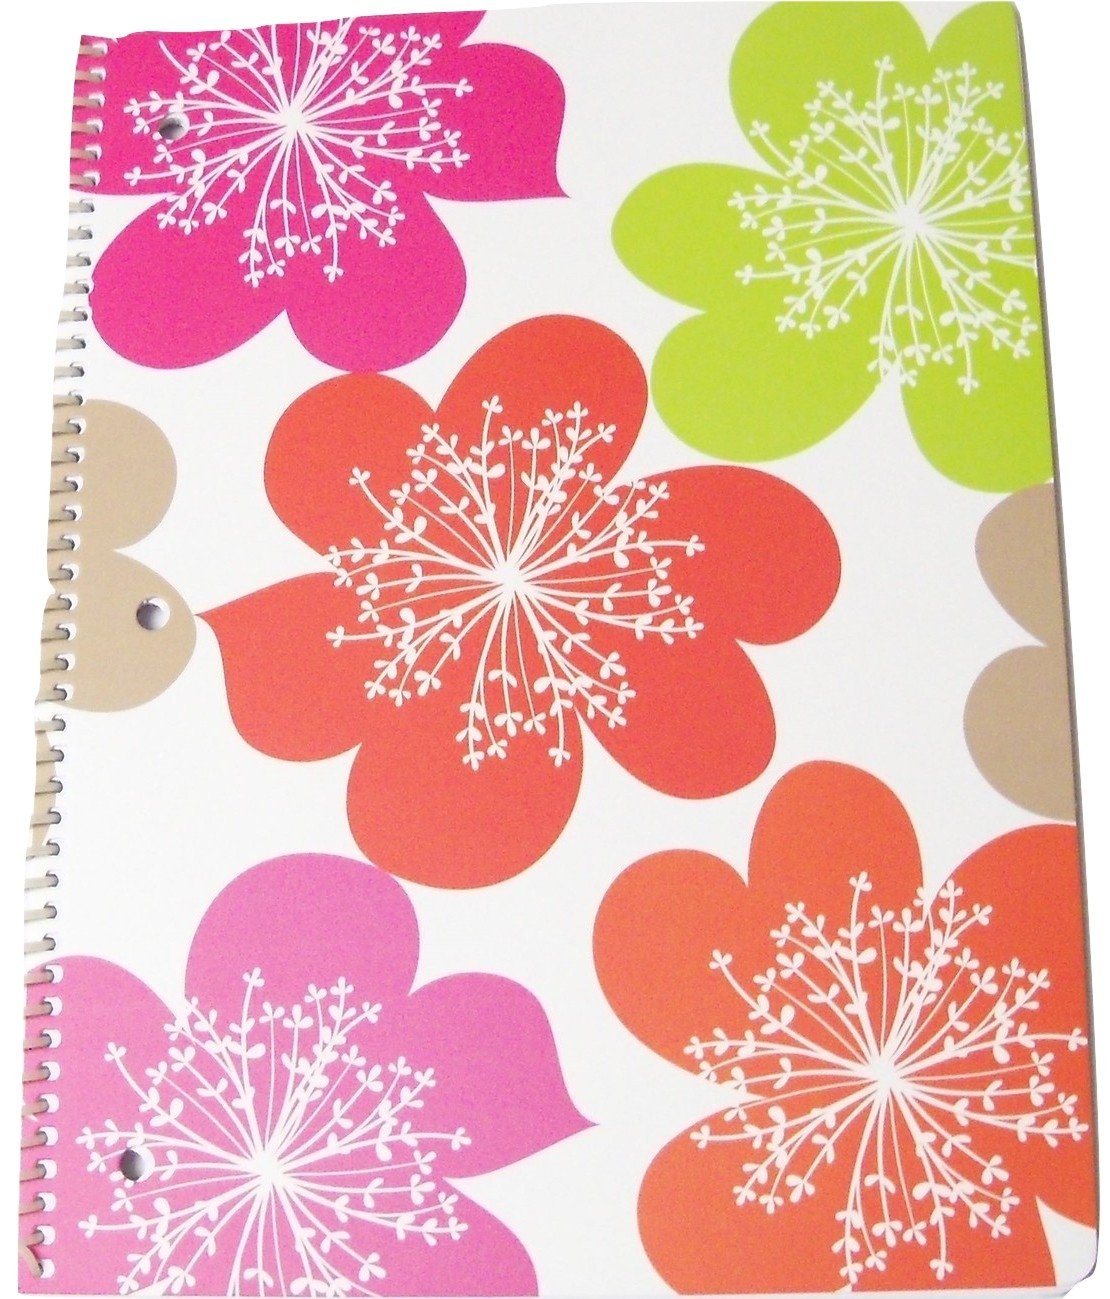 Amazon pink light design spiral notebook its a breeze amazon pink light design spiral notebook its a breeze multicolored flowers on white 8 x 105 60 sheets 120 pages toys games arubaitofo Image collections